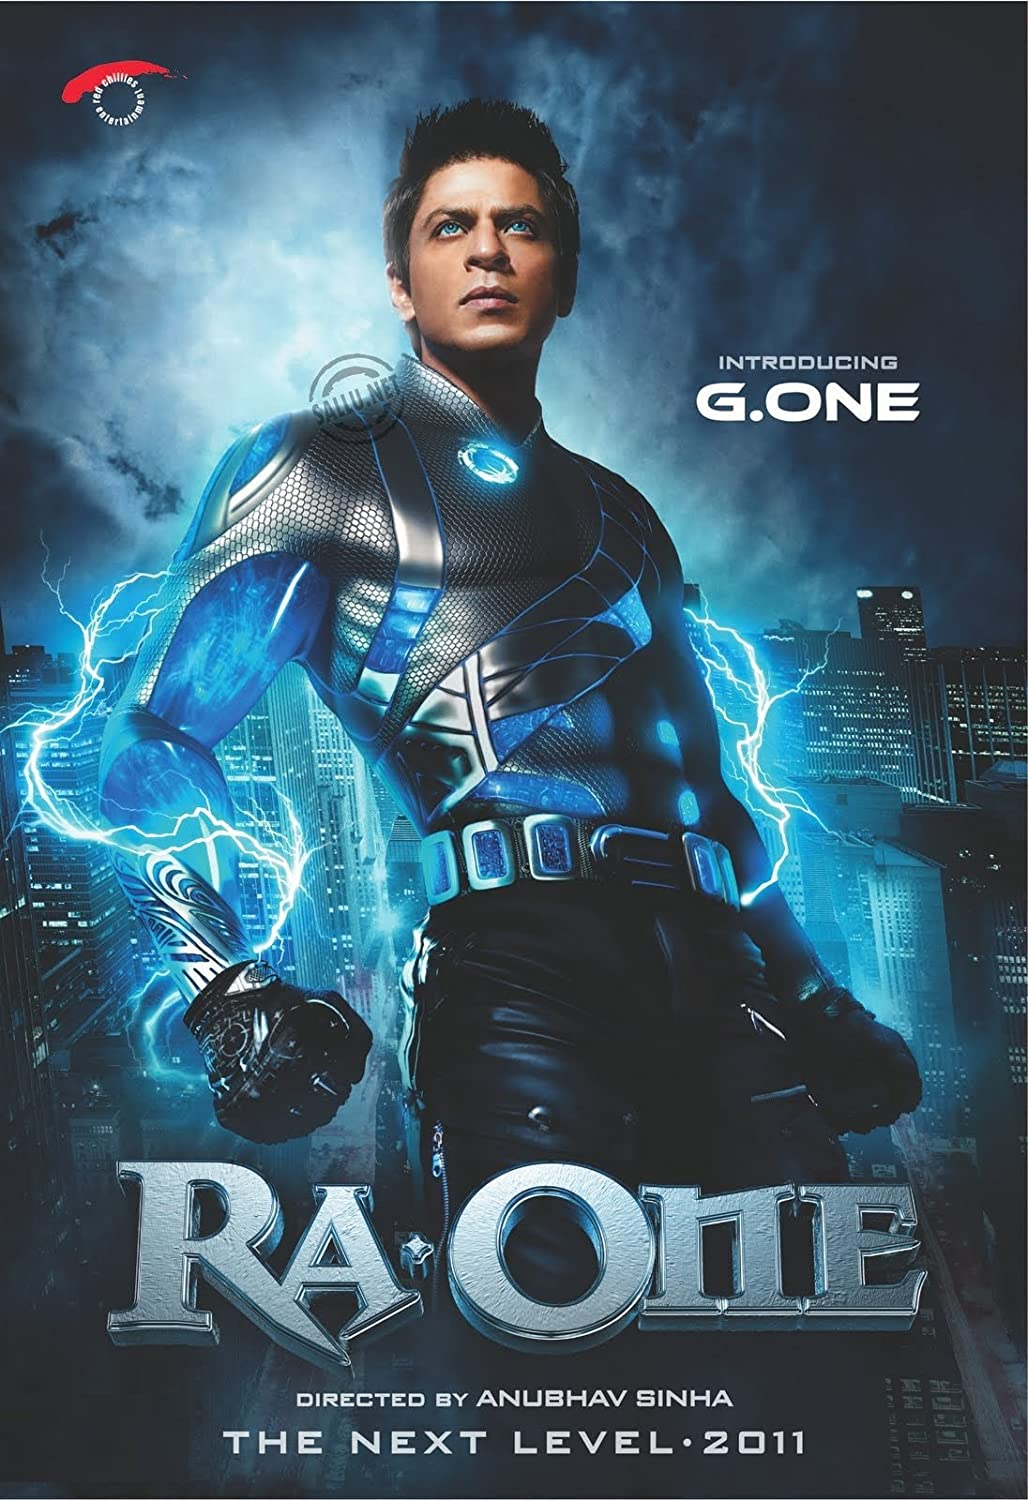 Amazon ra one blu ray 2012 bollywoodindian movie amazon ra one blu ray 2012 bollywoodindian movie kareena kapoor arjun rampal shah rukh khan movies tv buycottarizona